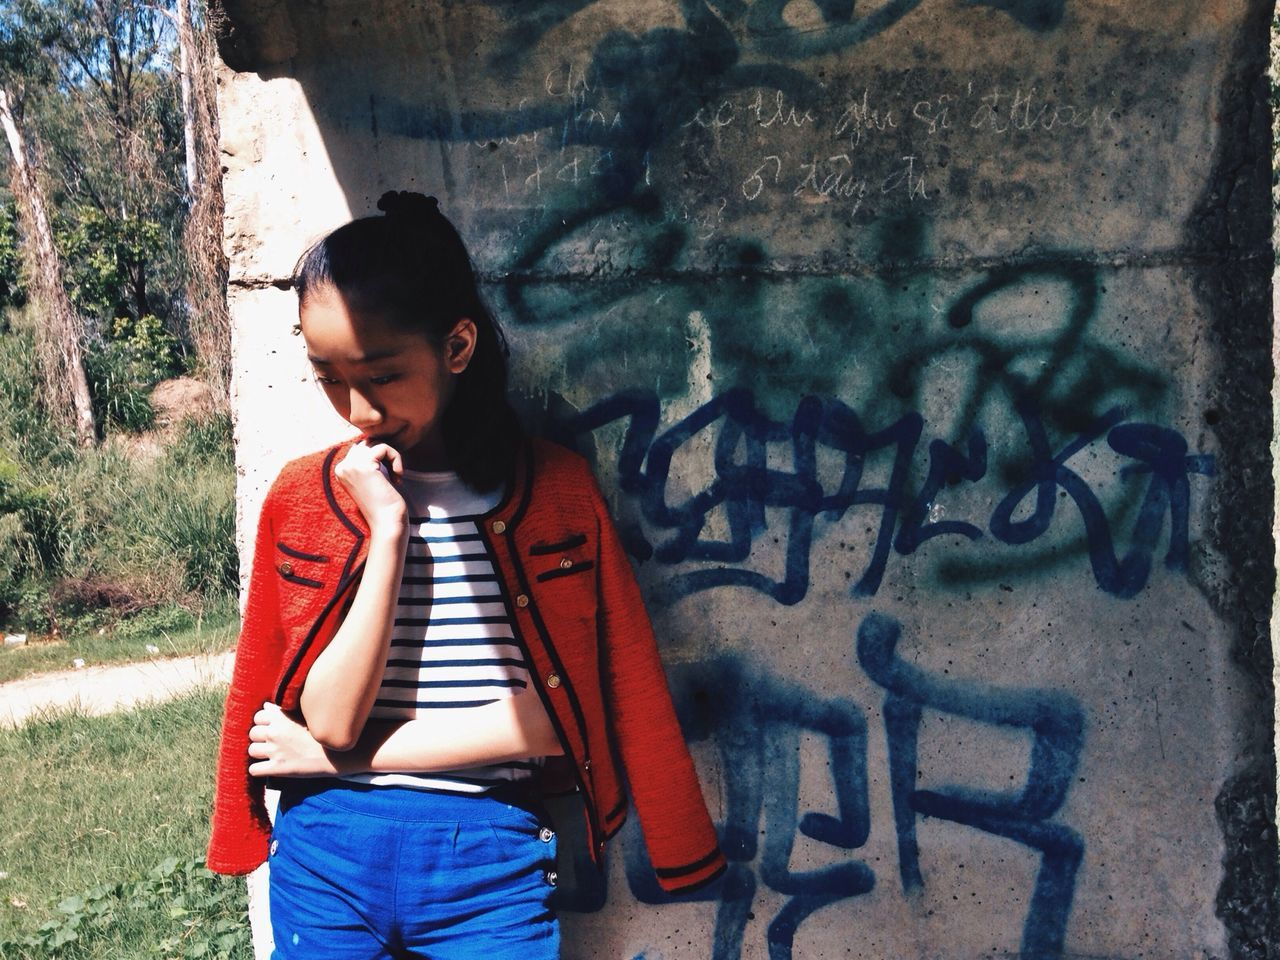 Thoughtful teenager with jacket standing against graffiti wall